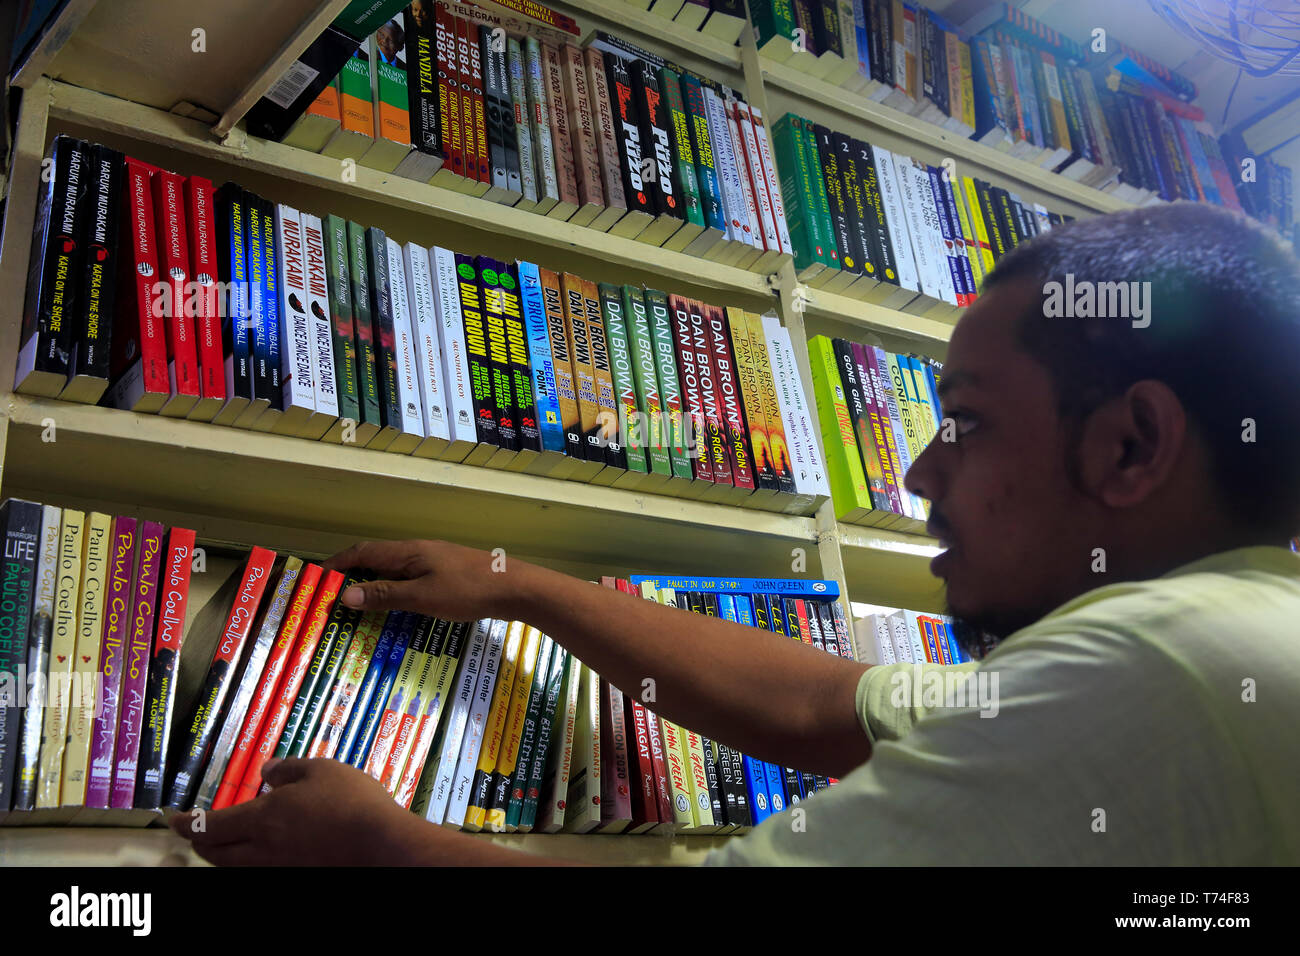 A bookshop at Nilkhet book market, Dhaka, Bangladesh. - Stock Image